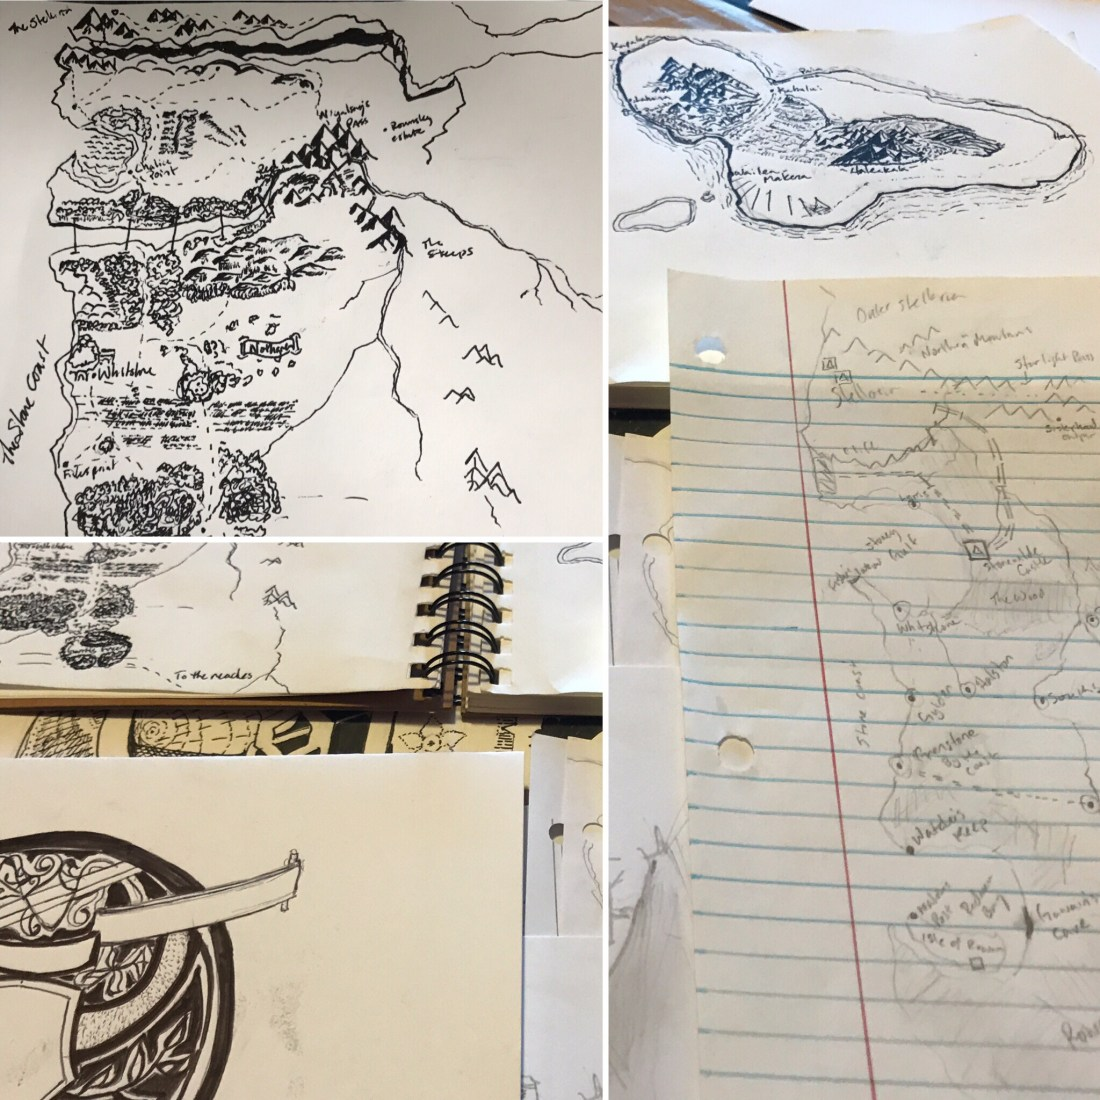 Early sketches and inspirations